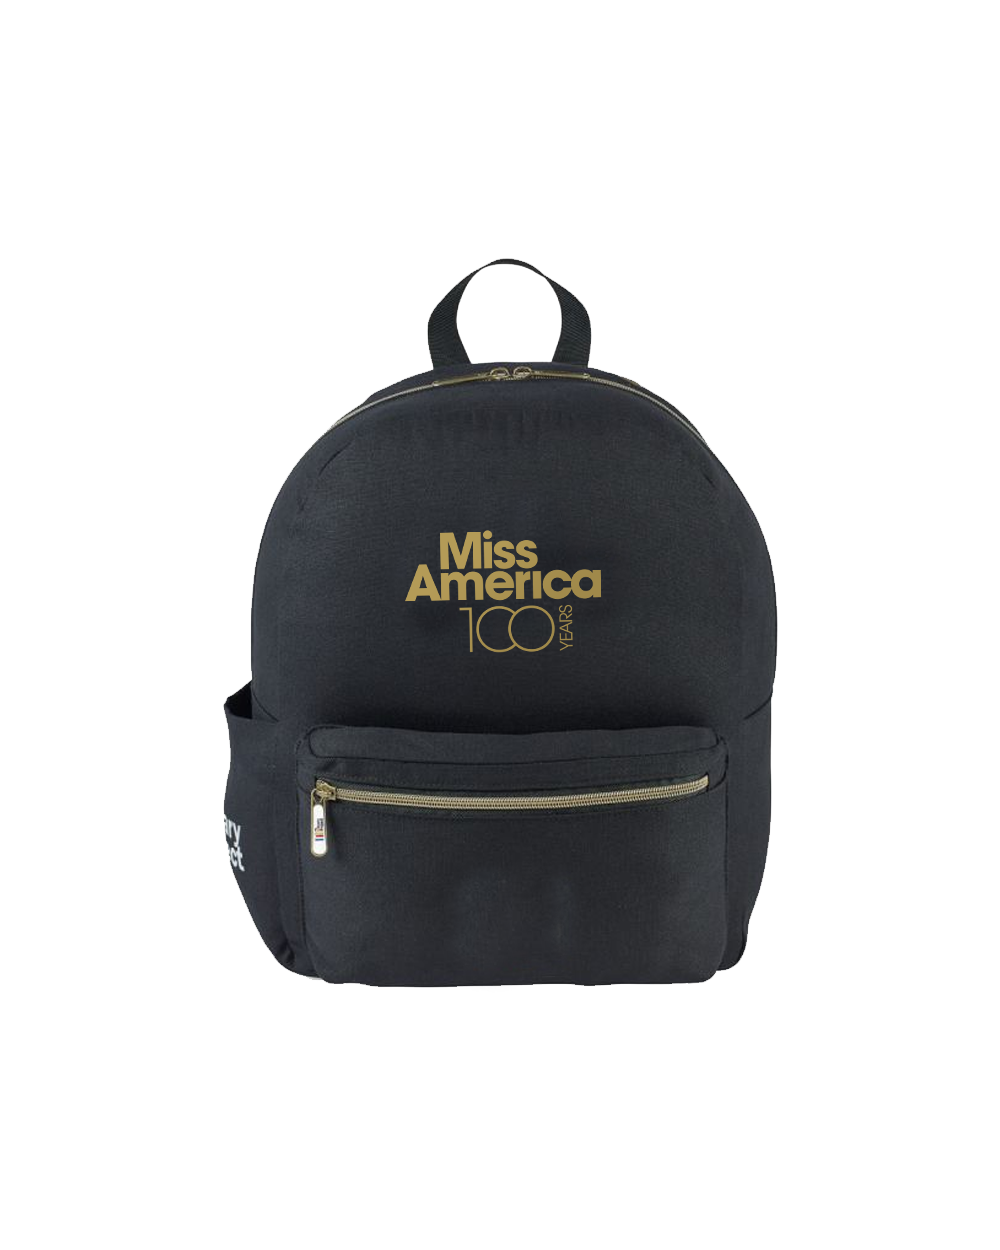 MA 100th Cotton Backpack Black